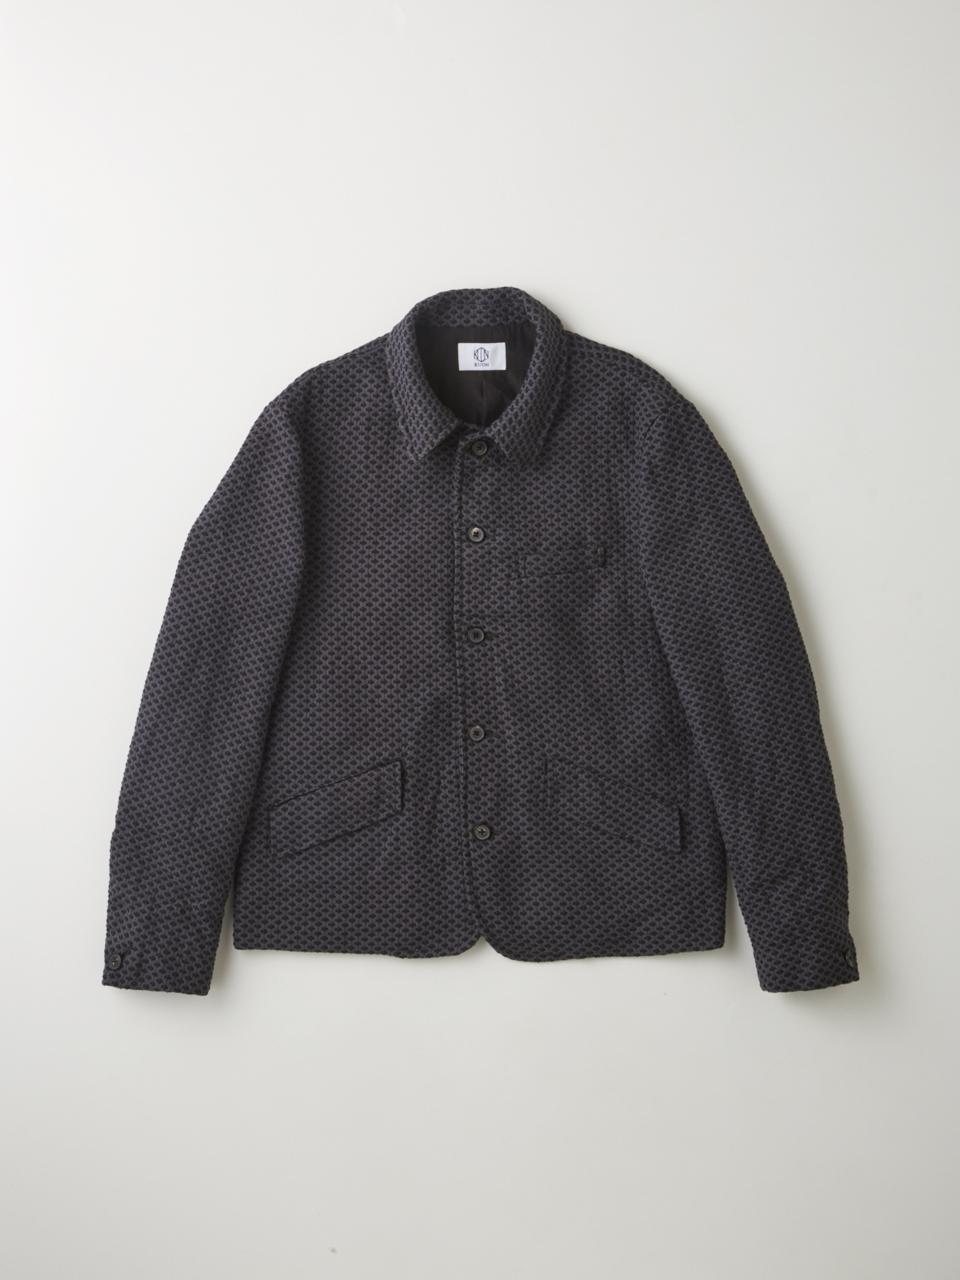 The Japanese techniques boro and sashiko play an important role throughout the KUON collection. KUON's work jacket features thick black Sashiko overstitch throughout the garment, which reinforces the jacket and provides a distinct texture.